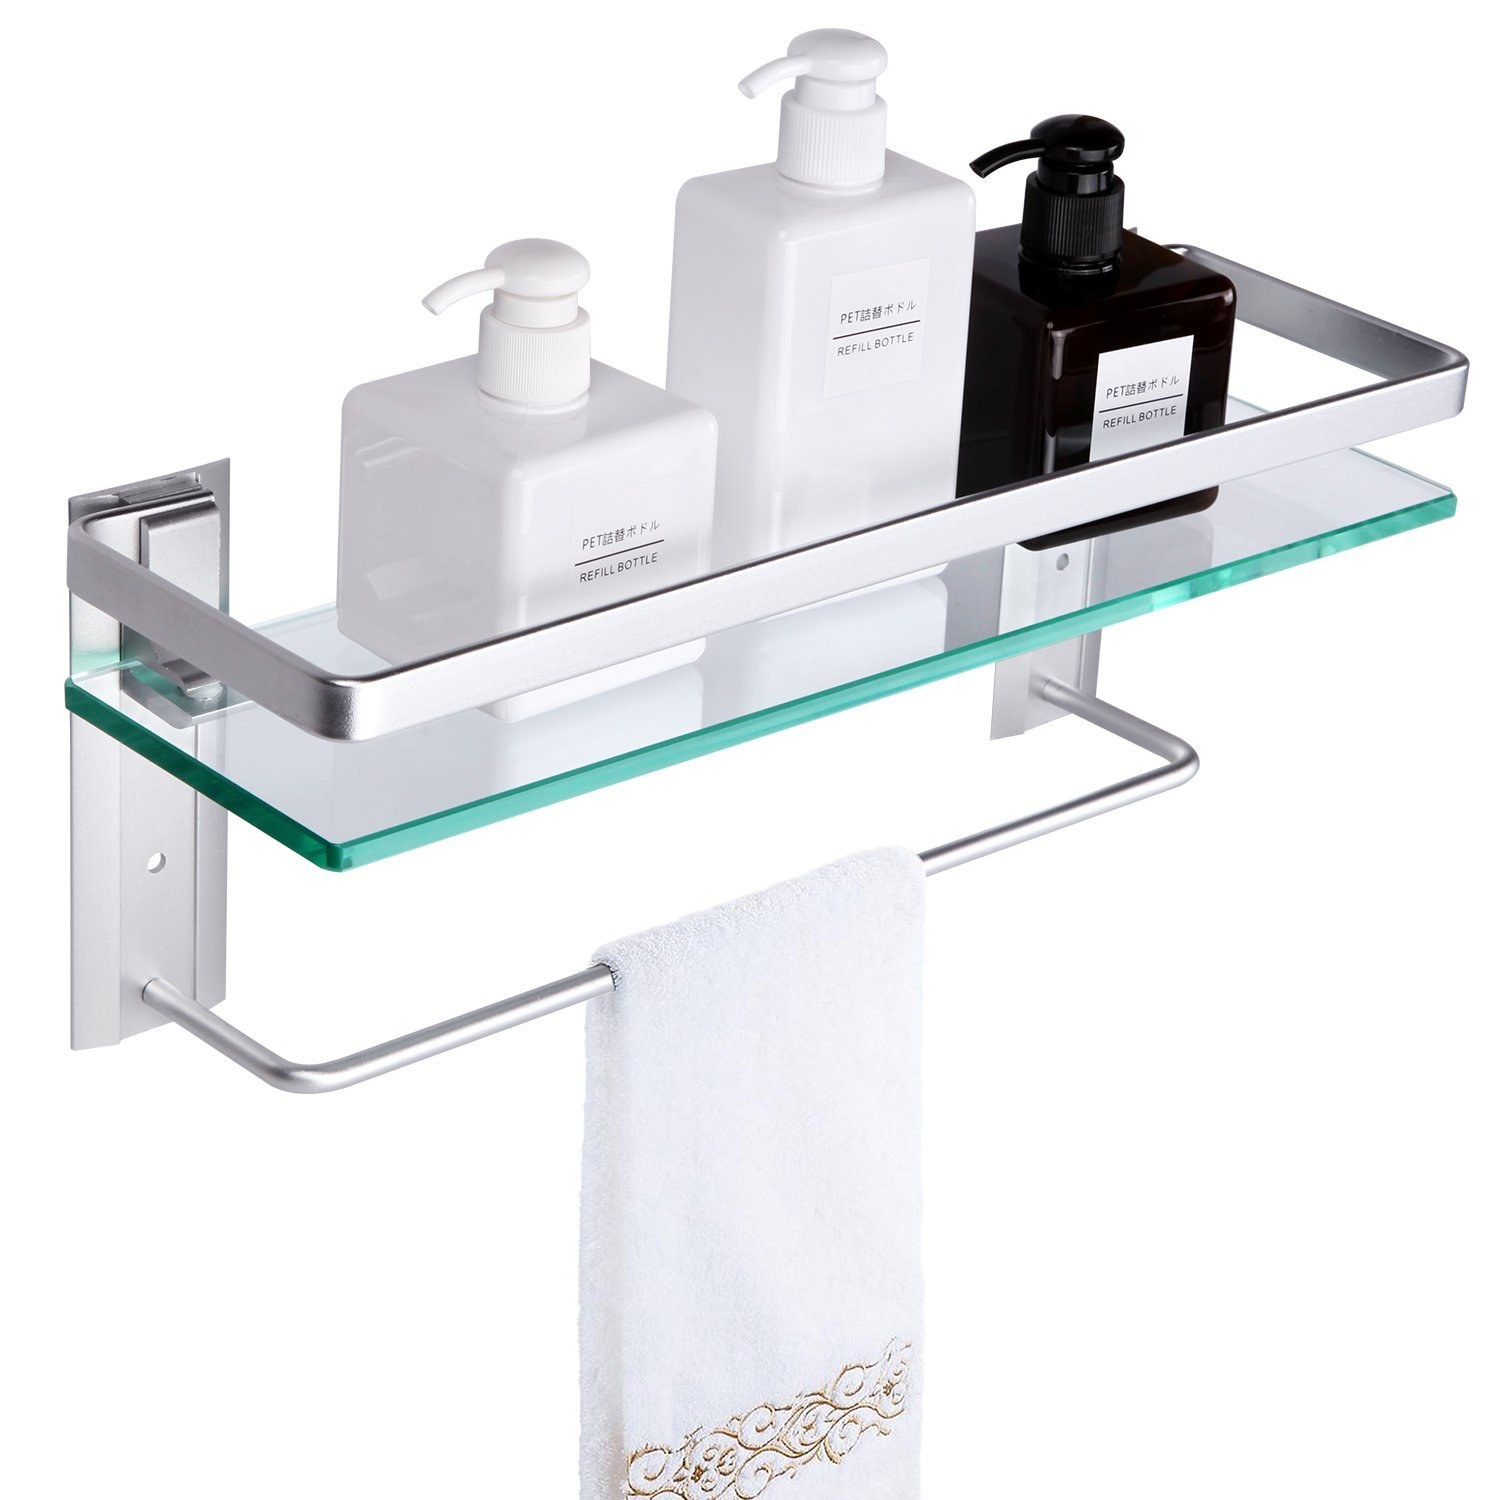 Tempered Glass Bathroom Shelf With Towel Bar. VDOMUS Wall Mounted Shower  Storage.15.2 By